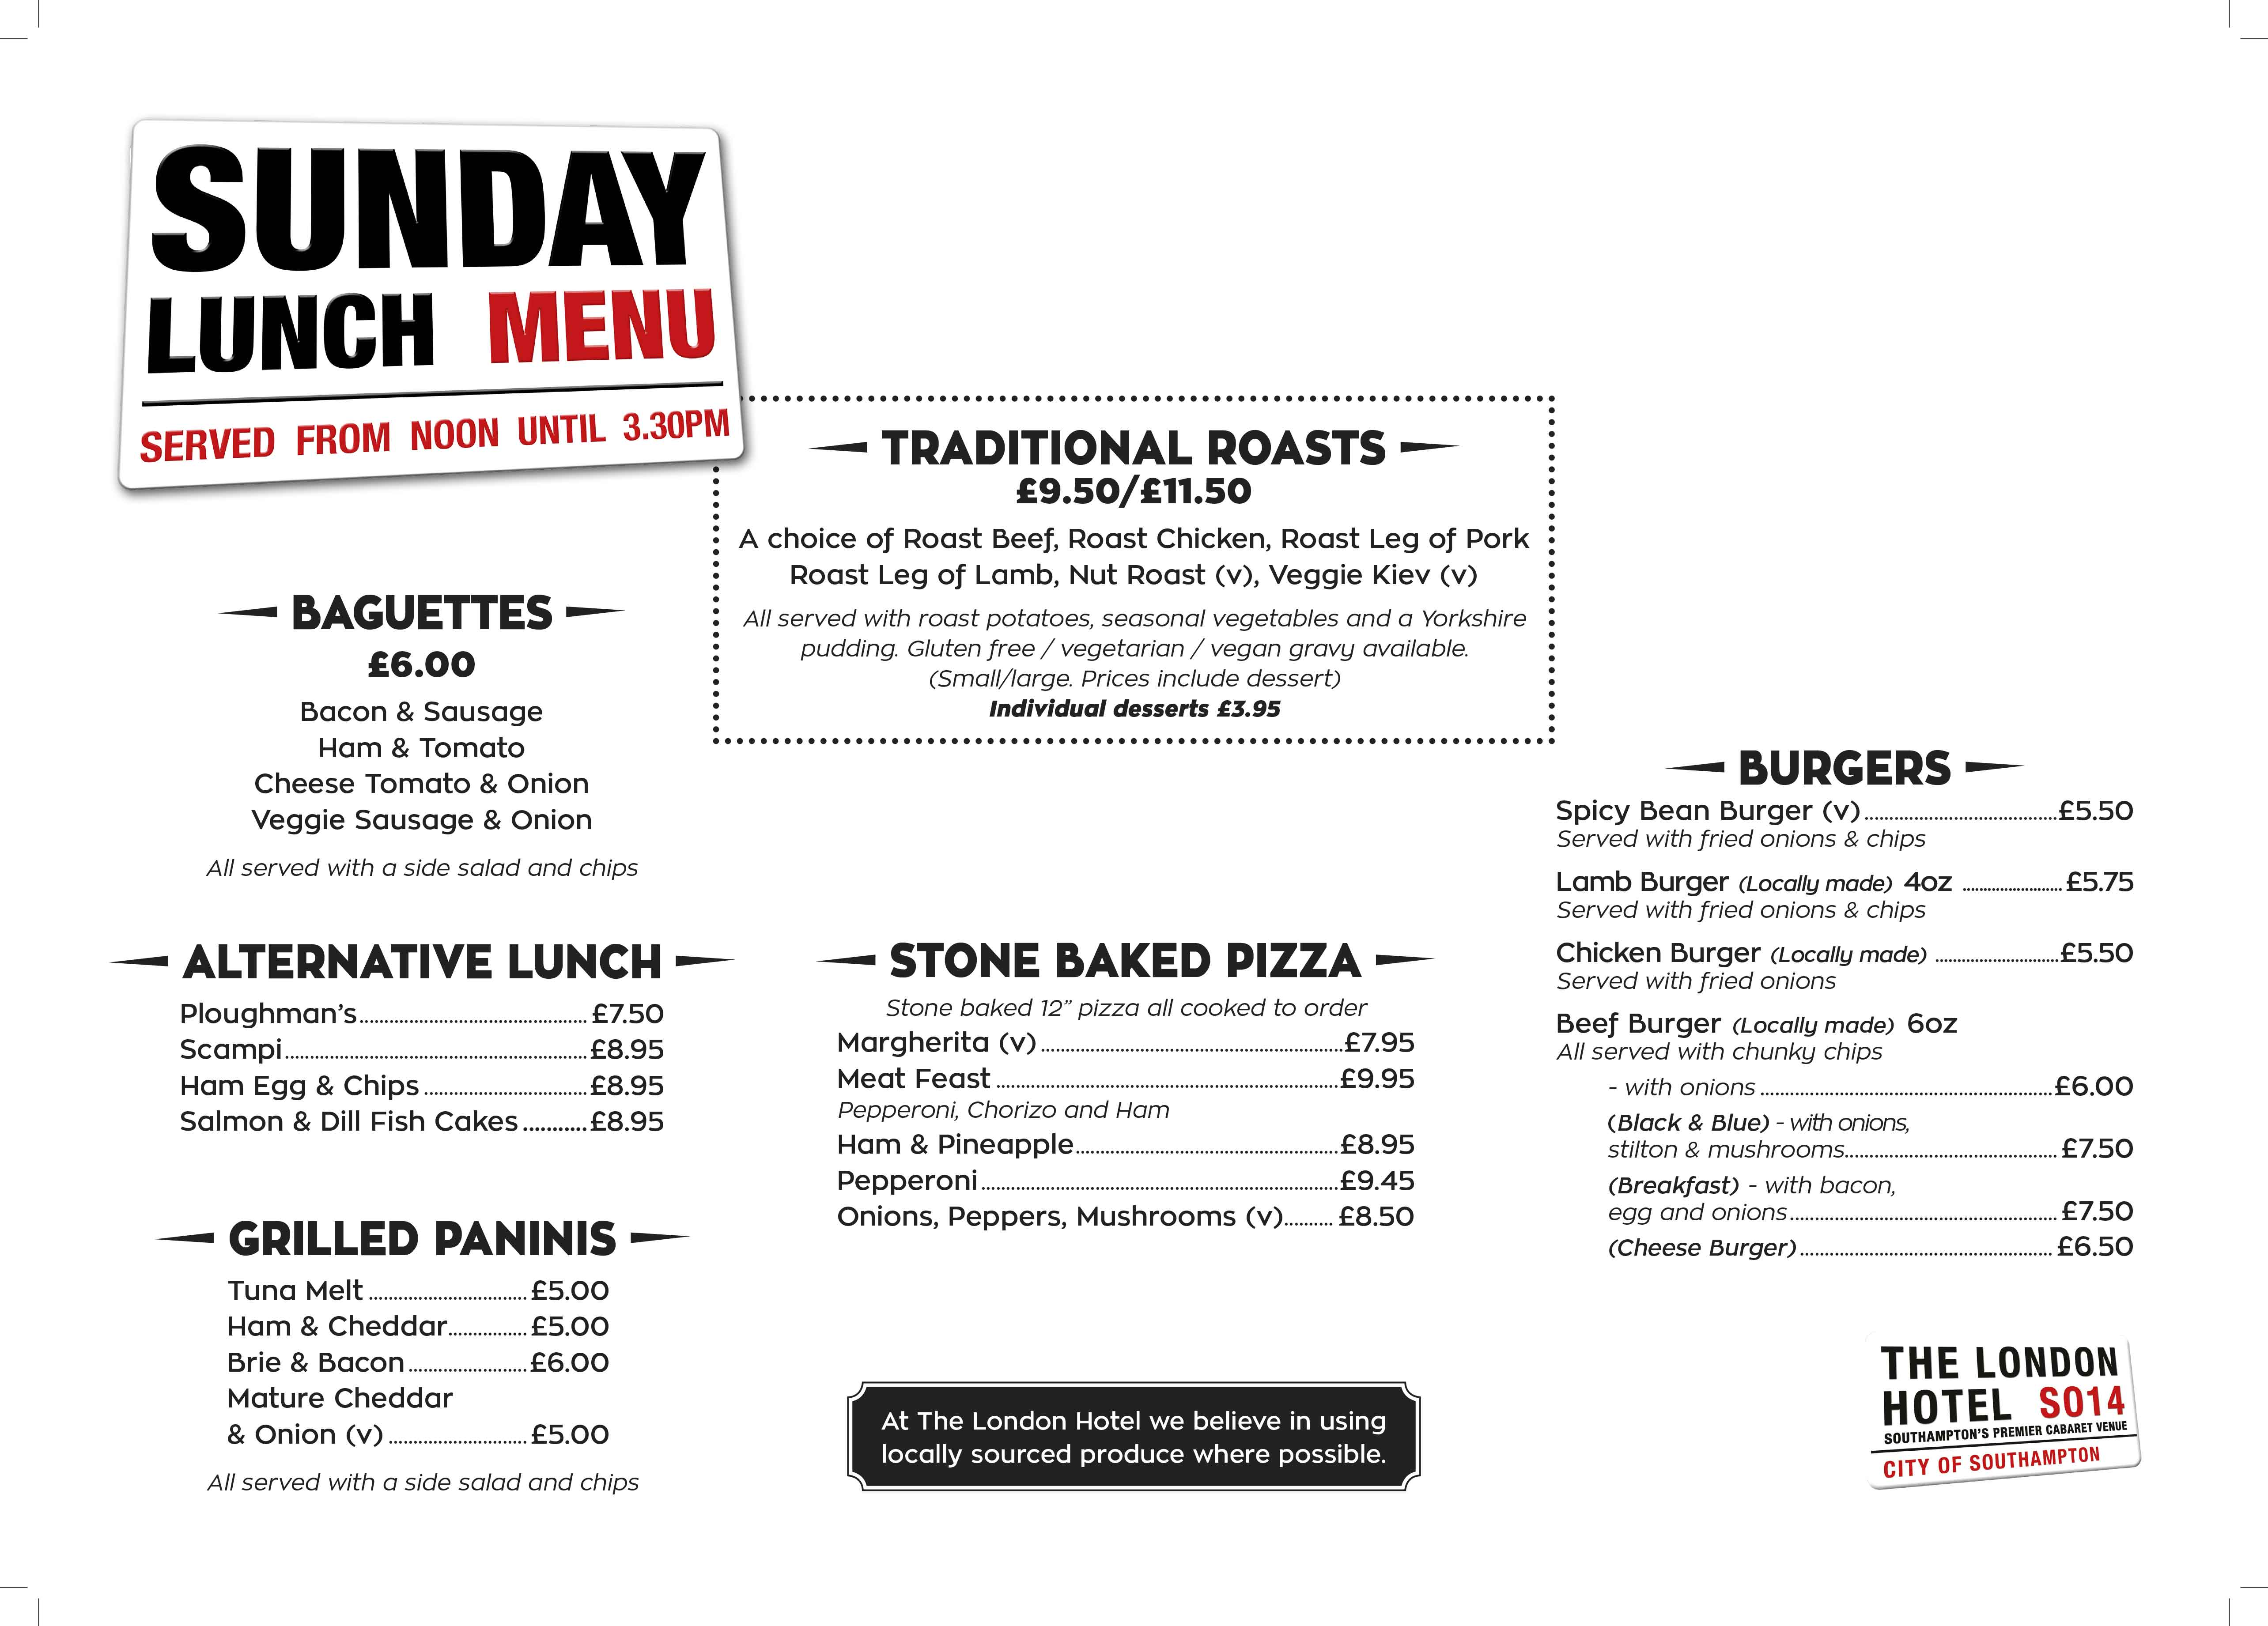 The-London-Hotel-A3-1pp-Sunday-Lunch-Window-Menu-2018